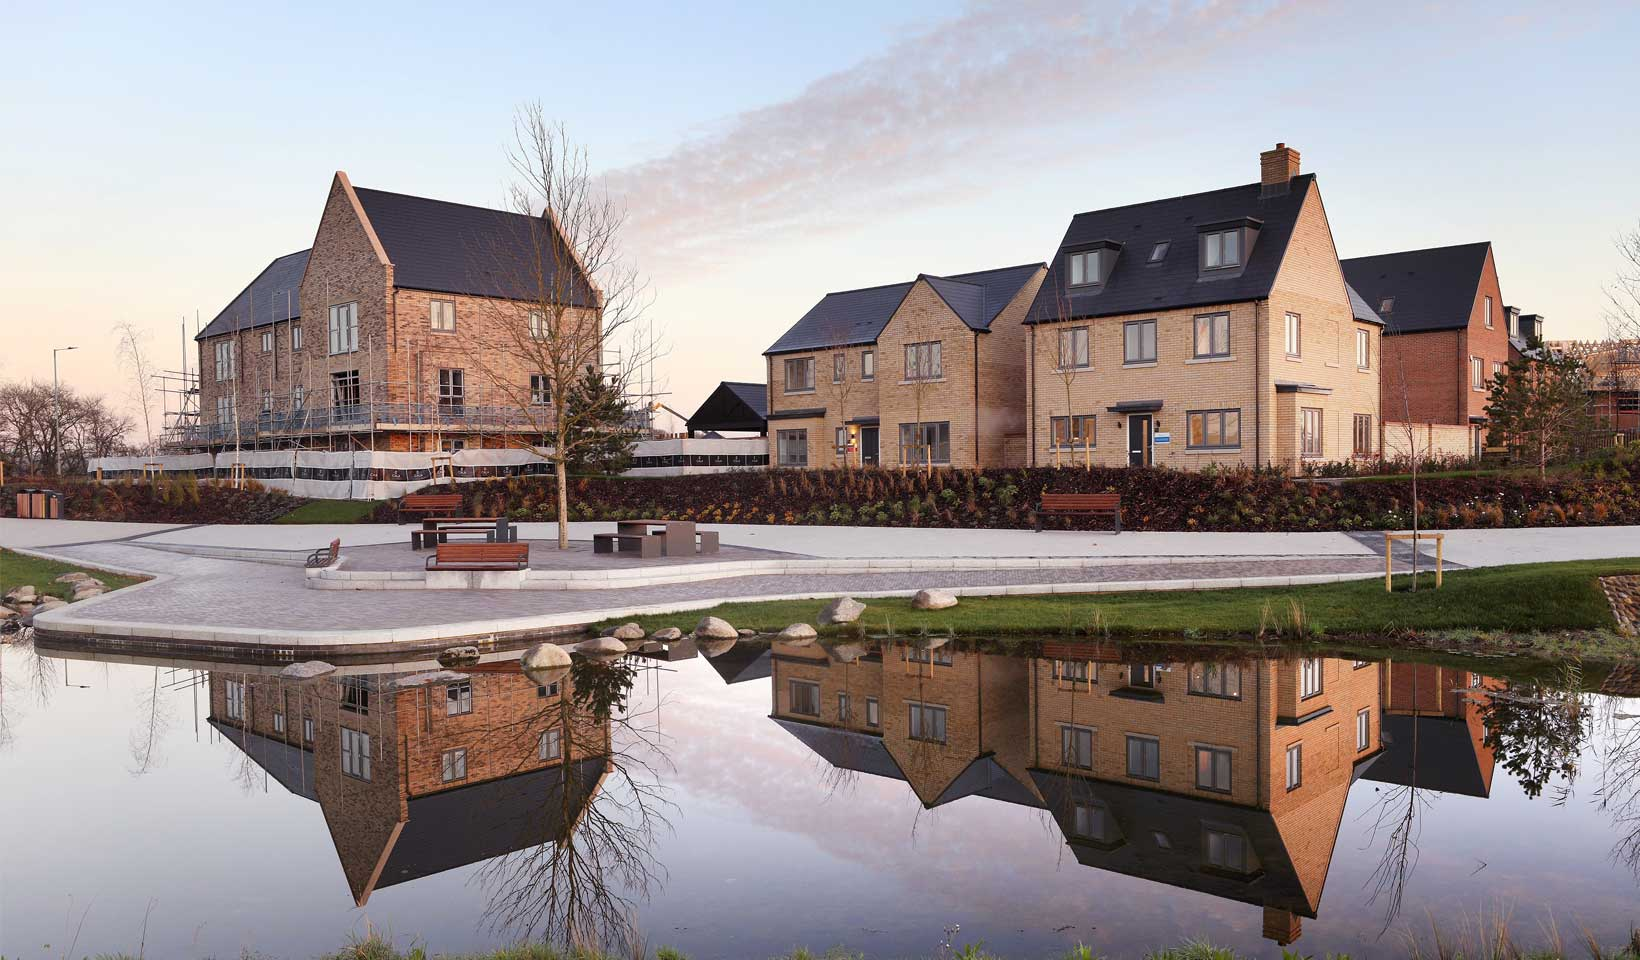 Homes at Wintringham St Neots